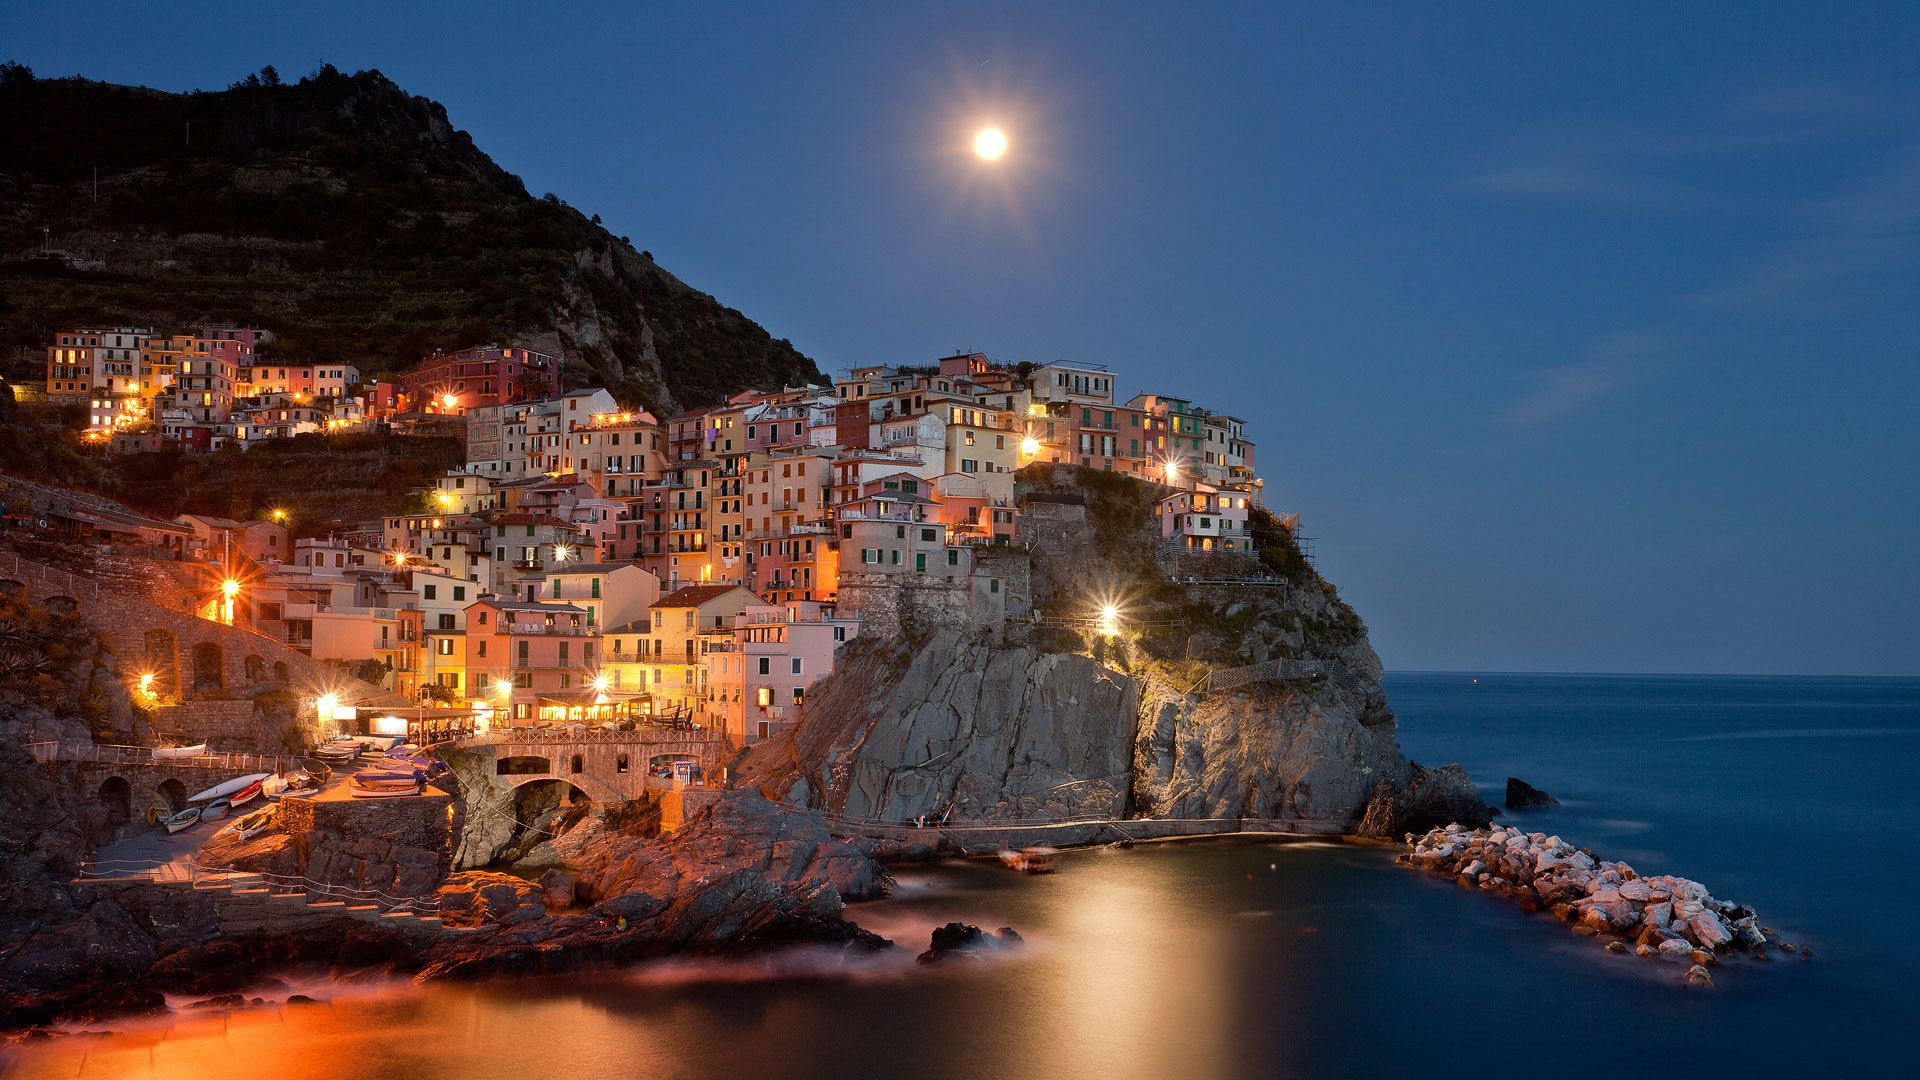 Manarola Night view [1920x1080]. Let like/ follow/ repin